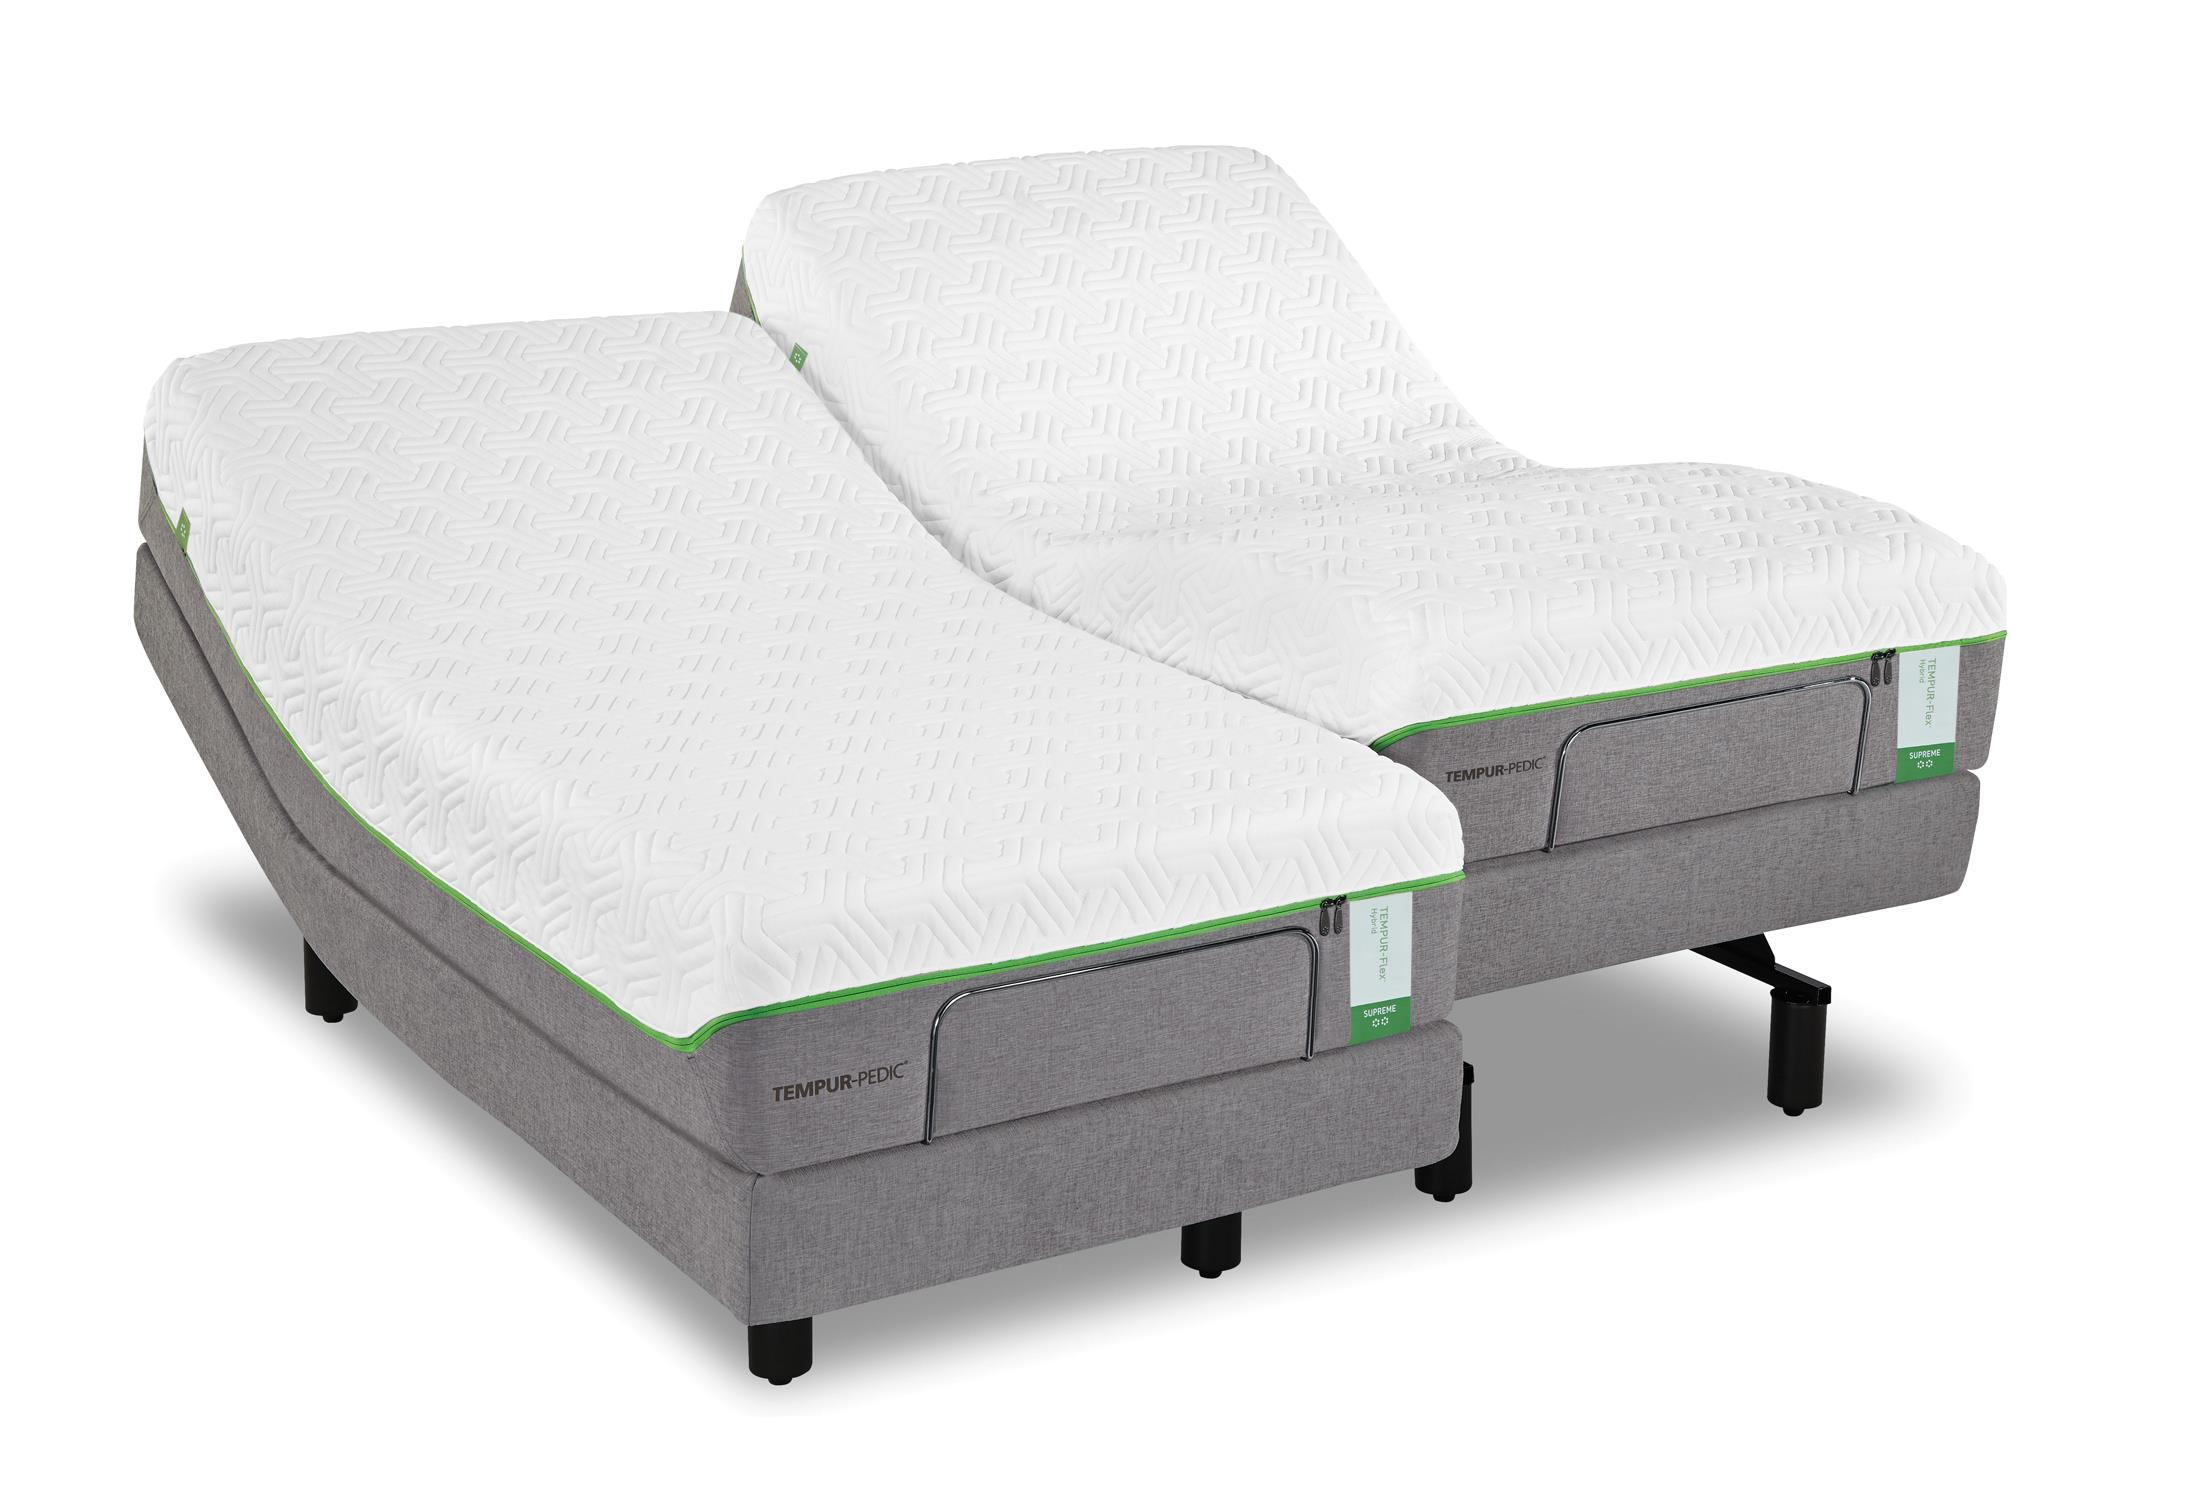 Tempur-Pedic® TEMPUR-Flex Supreme King Medium Plush Mattress Set - Item Number: 10116170+2x25289220